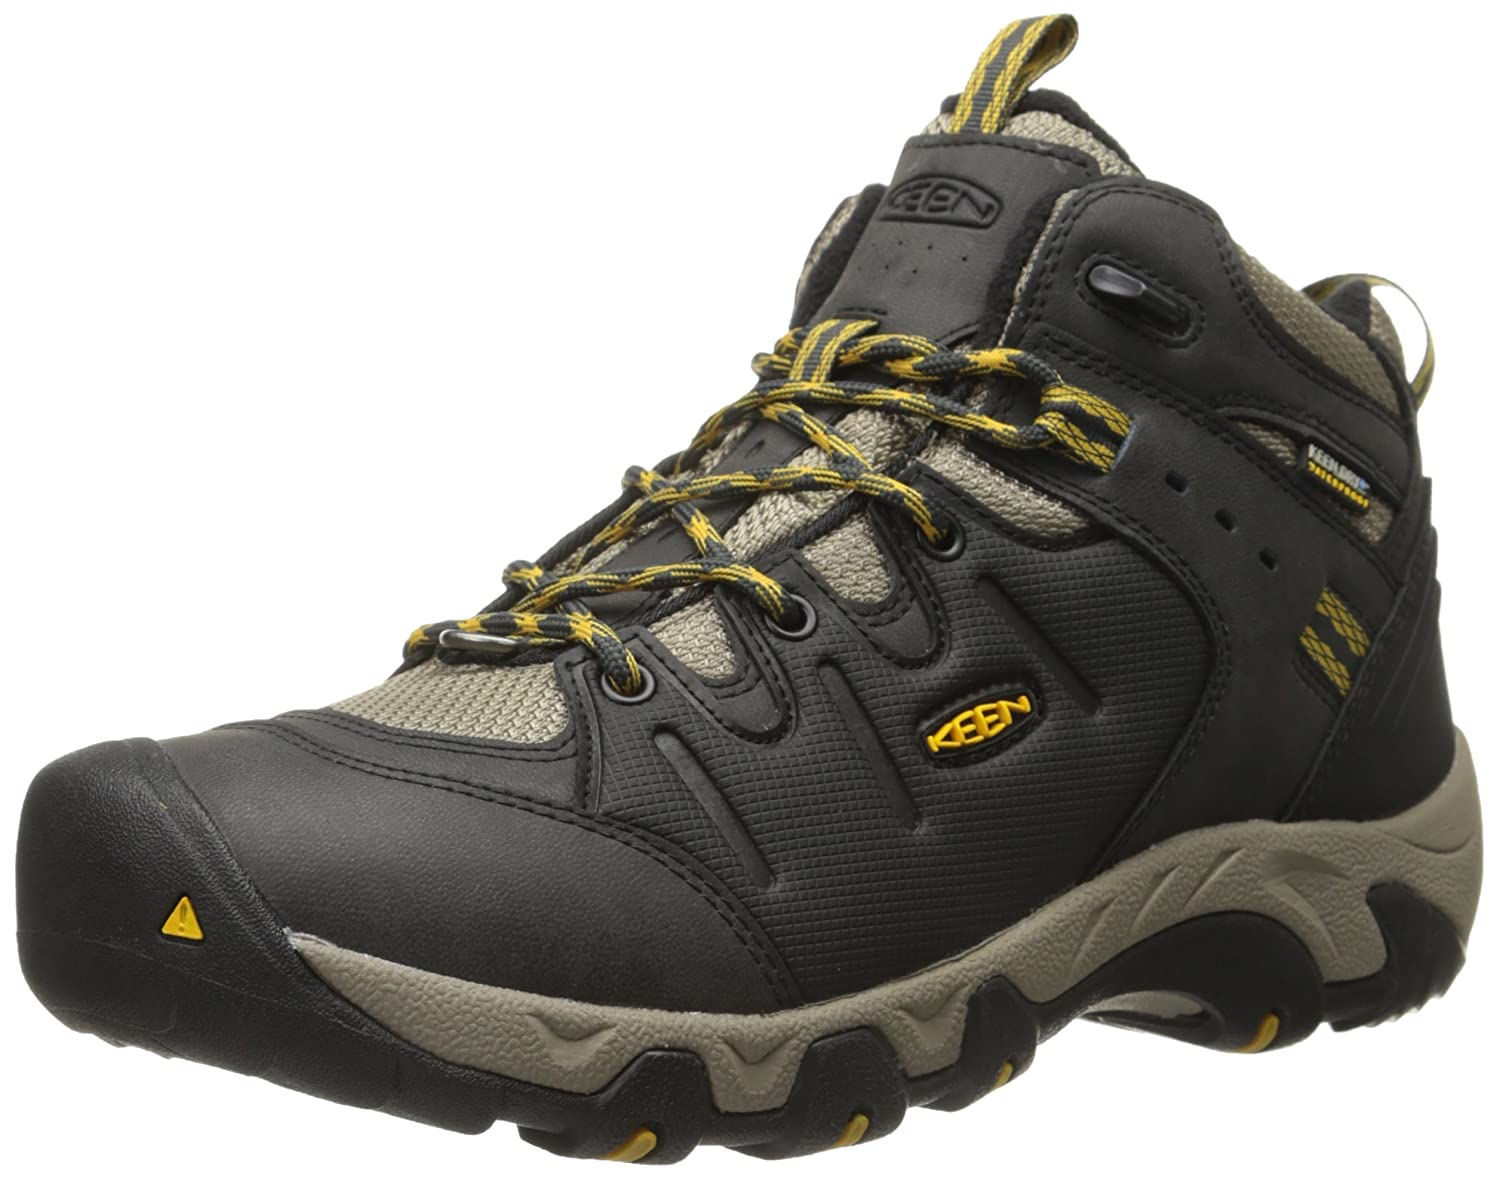 Kids' Clothing, Shoes & Accs Clothing, Shoes & Accessories Honest Keen Boys Leather Waterproof Hiking Trail Boots Size 10 Brown